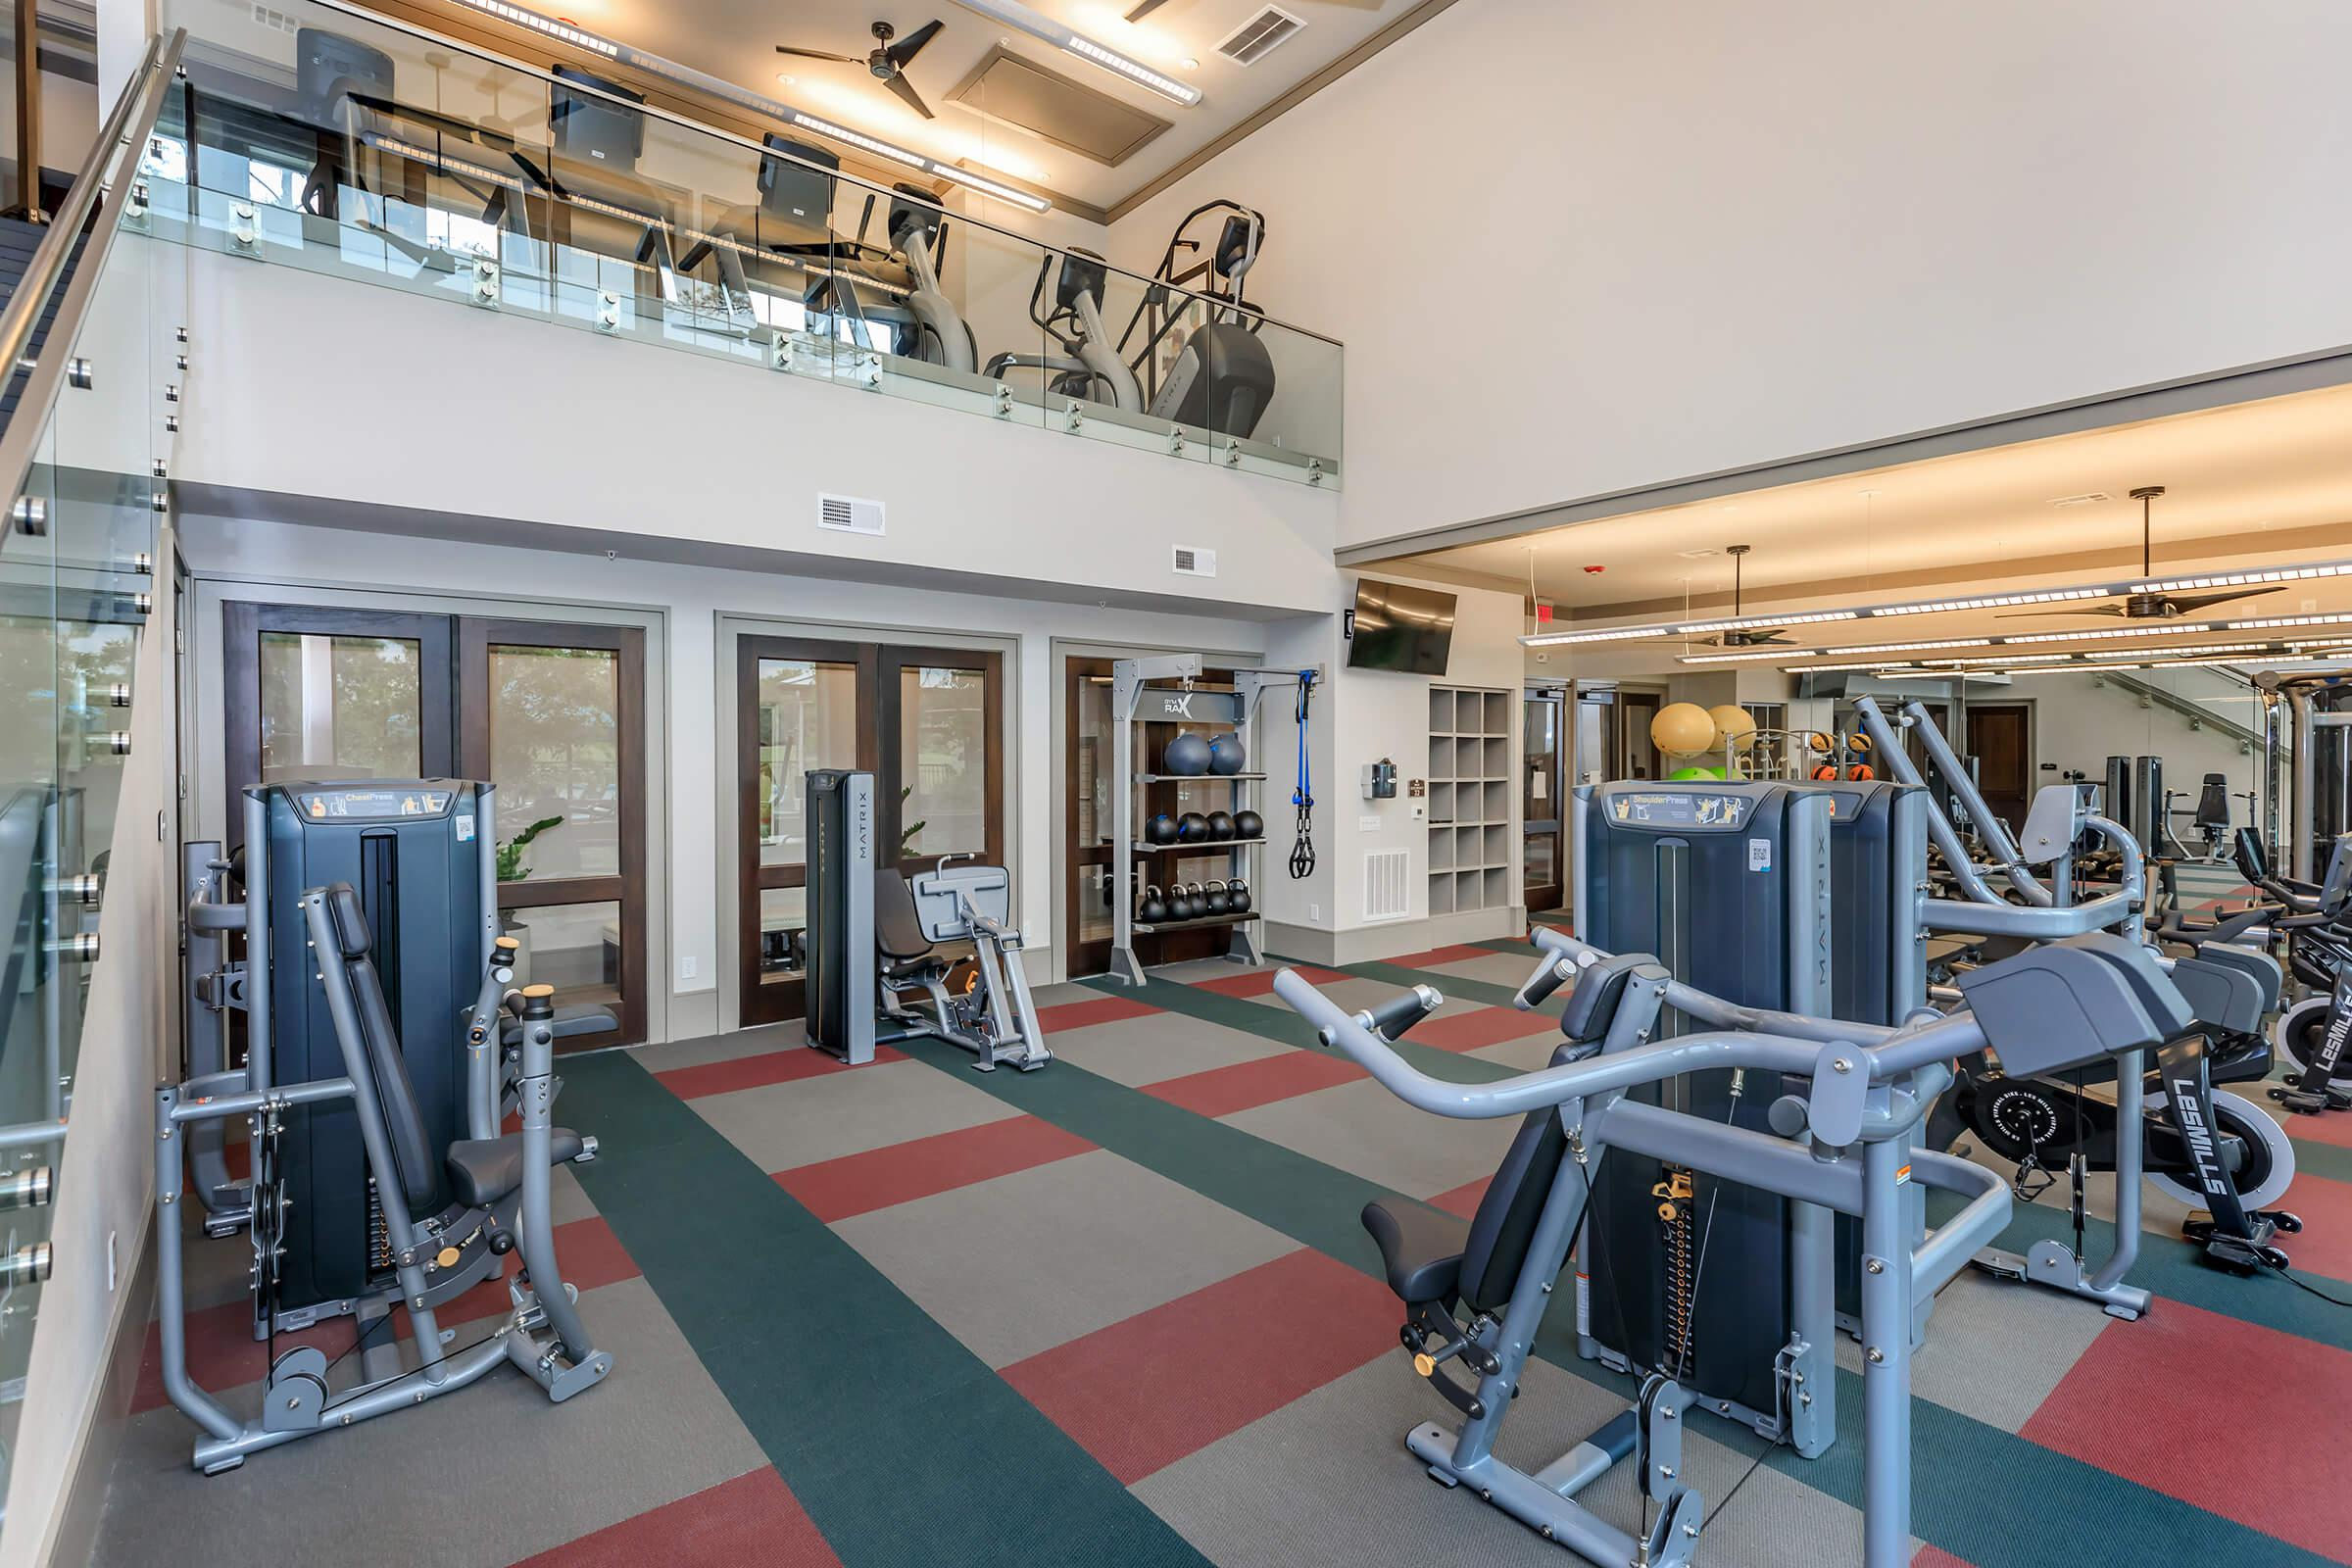 2-story state-of-the-art fitness center showing equipment from first floor with second floor visible